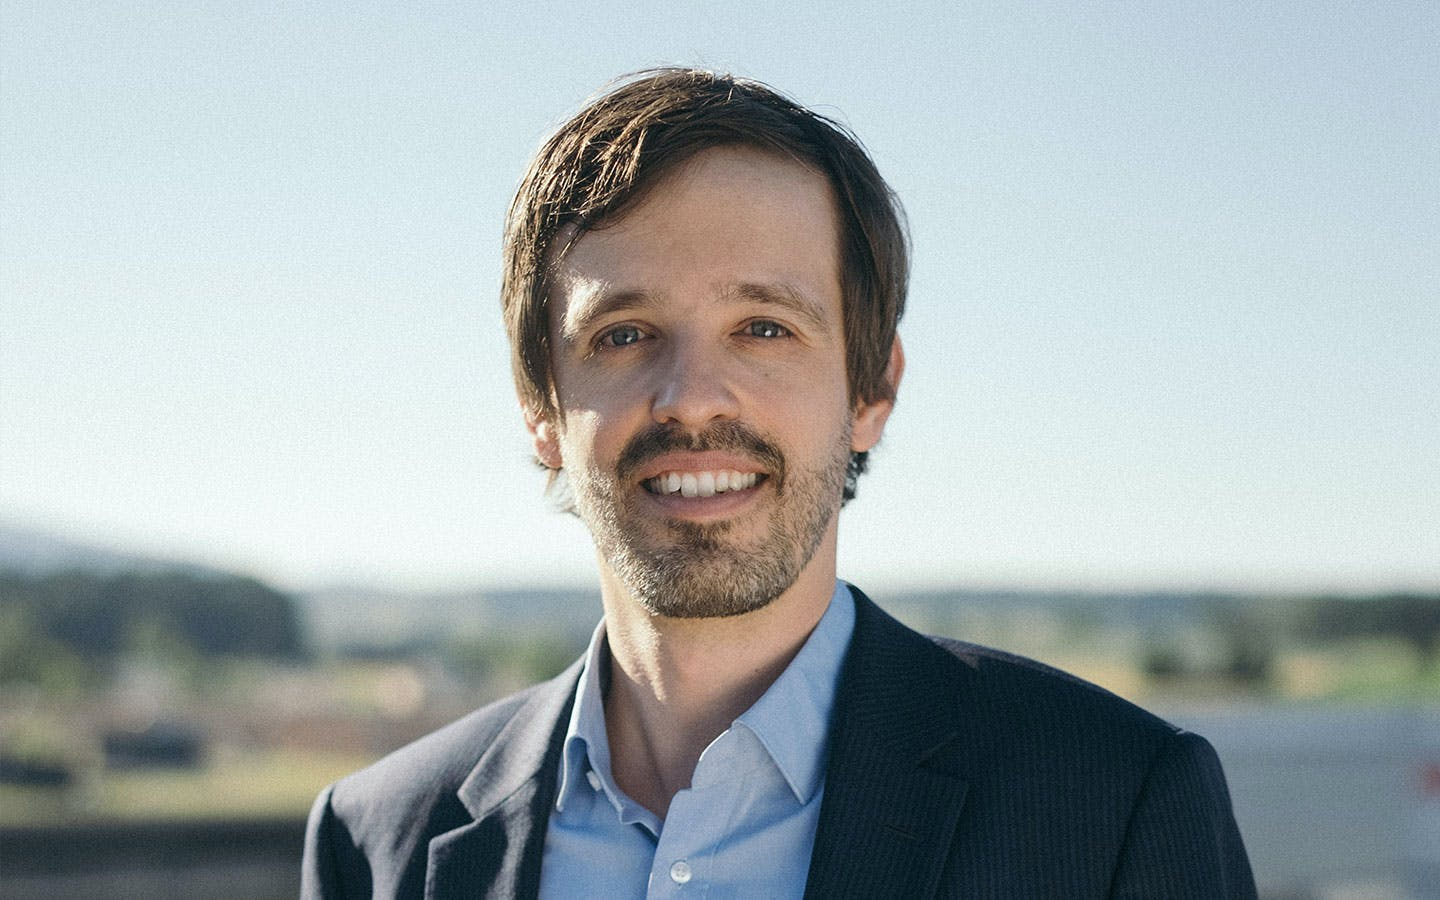 Jan Wurzbacher, co-CEO and co-founder of Climeworks